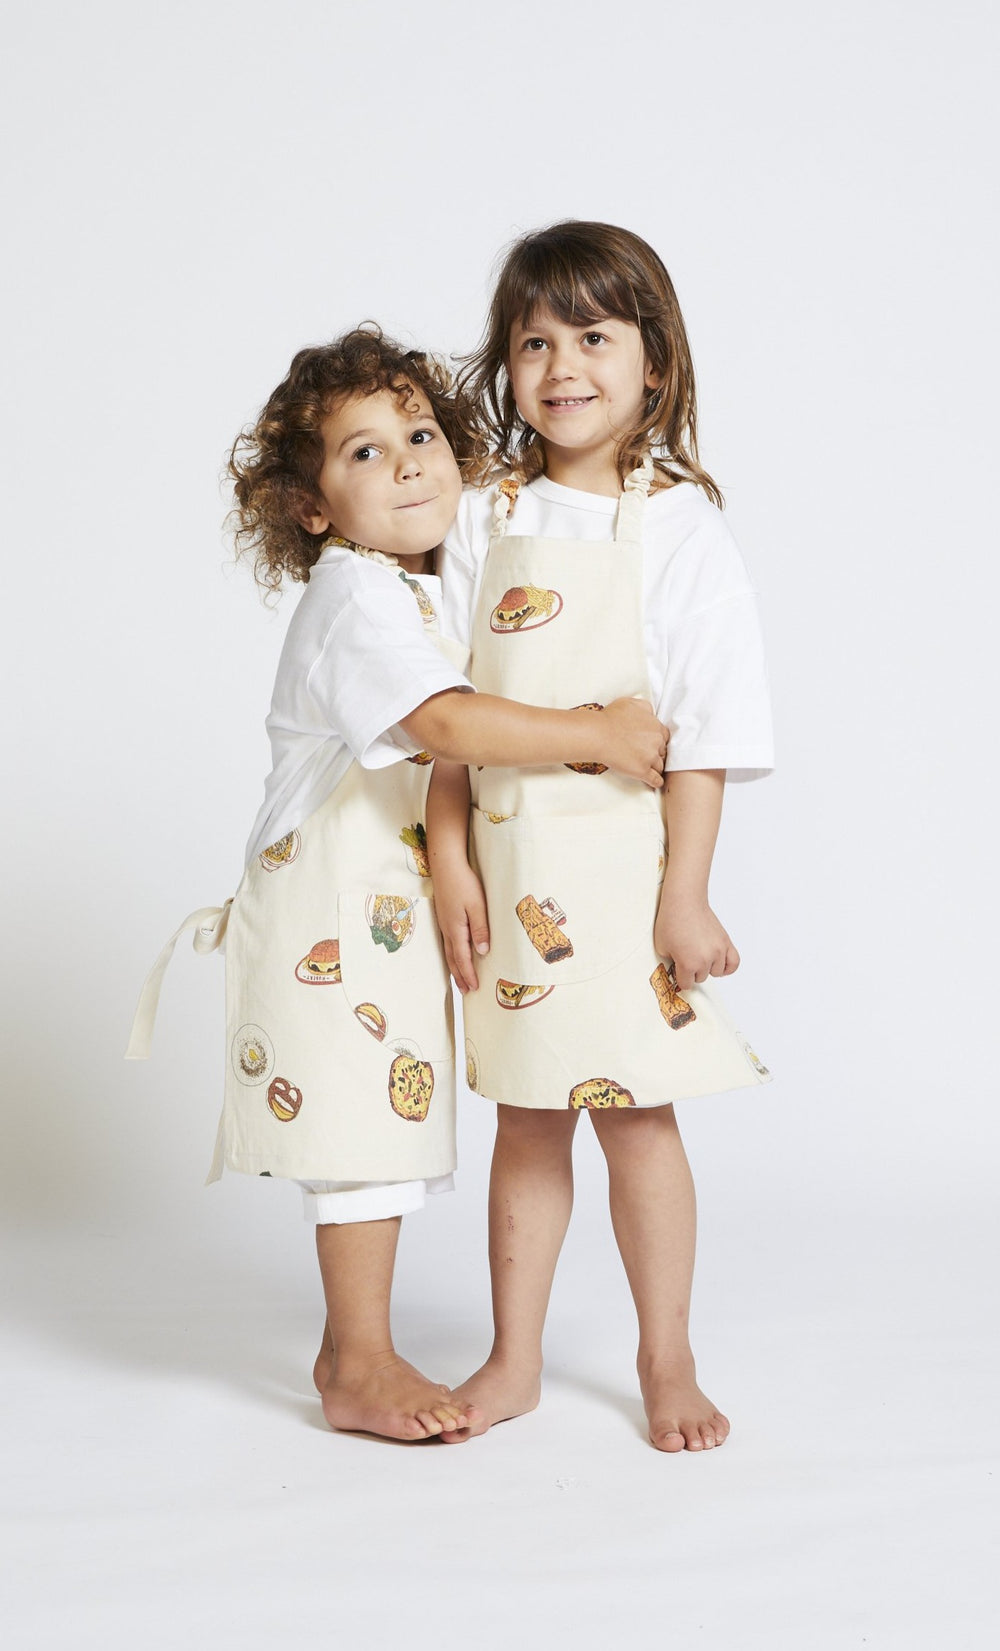 Worktones x GFCD Kids Apron - Organic Cotton